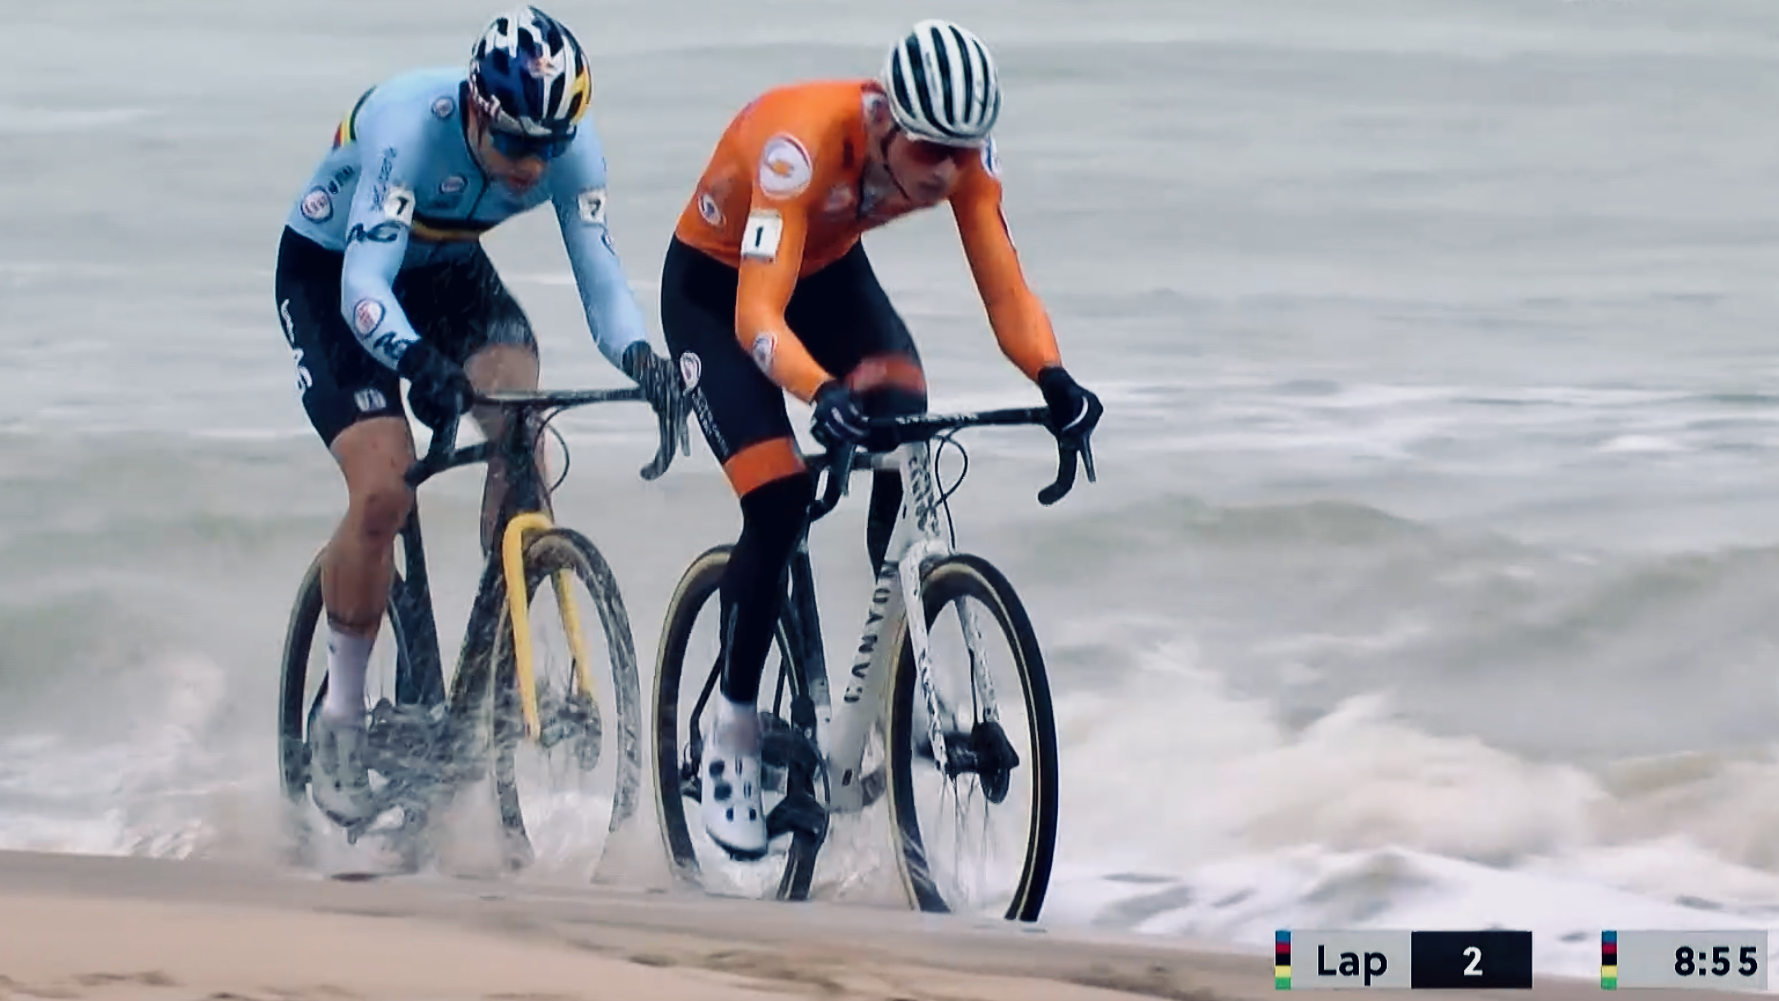 Dutch and Belgian cyclists racing through the waves